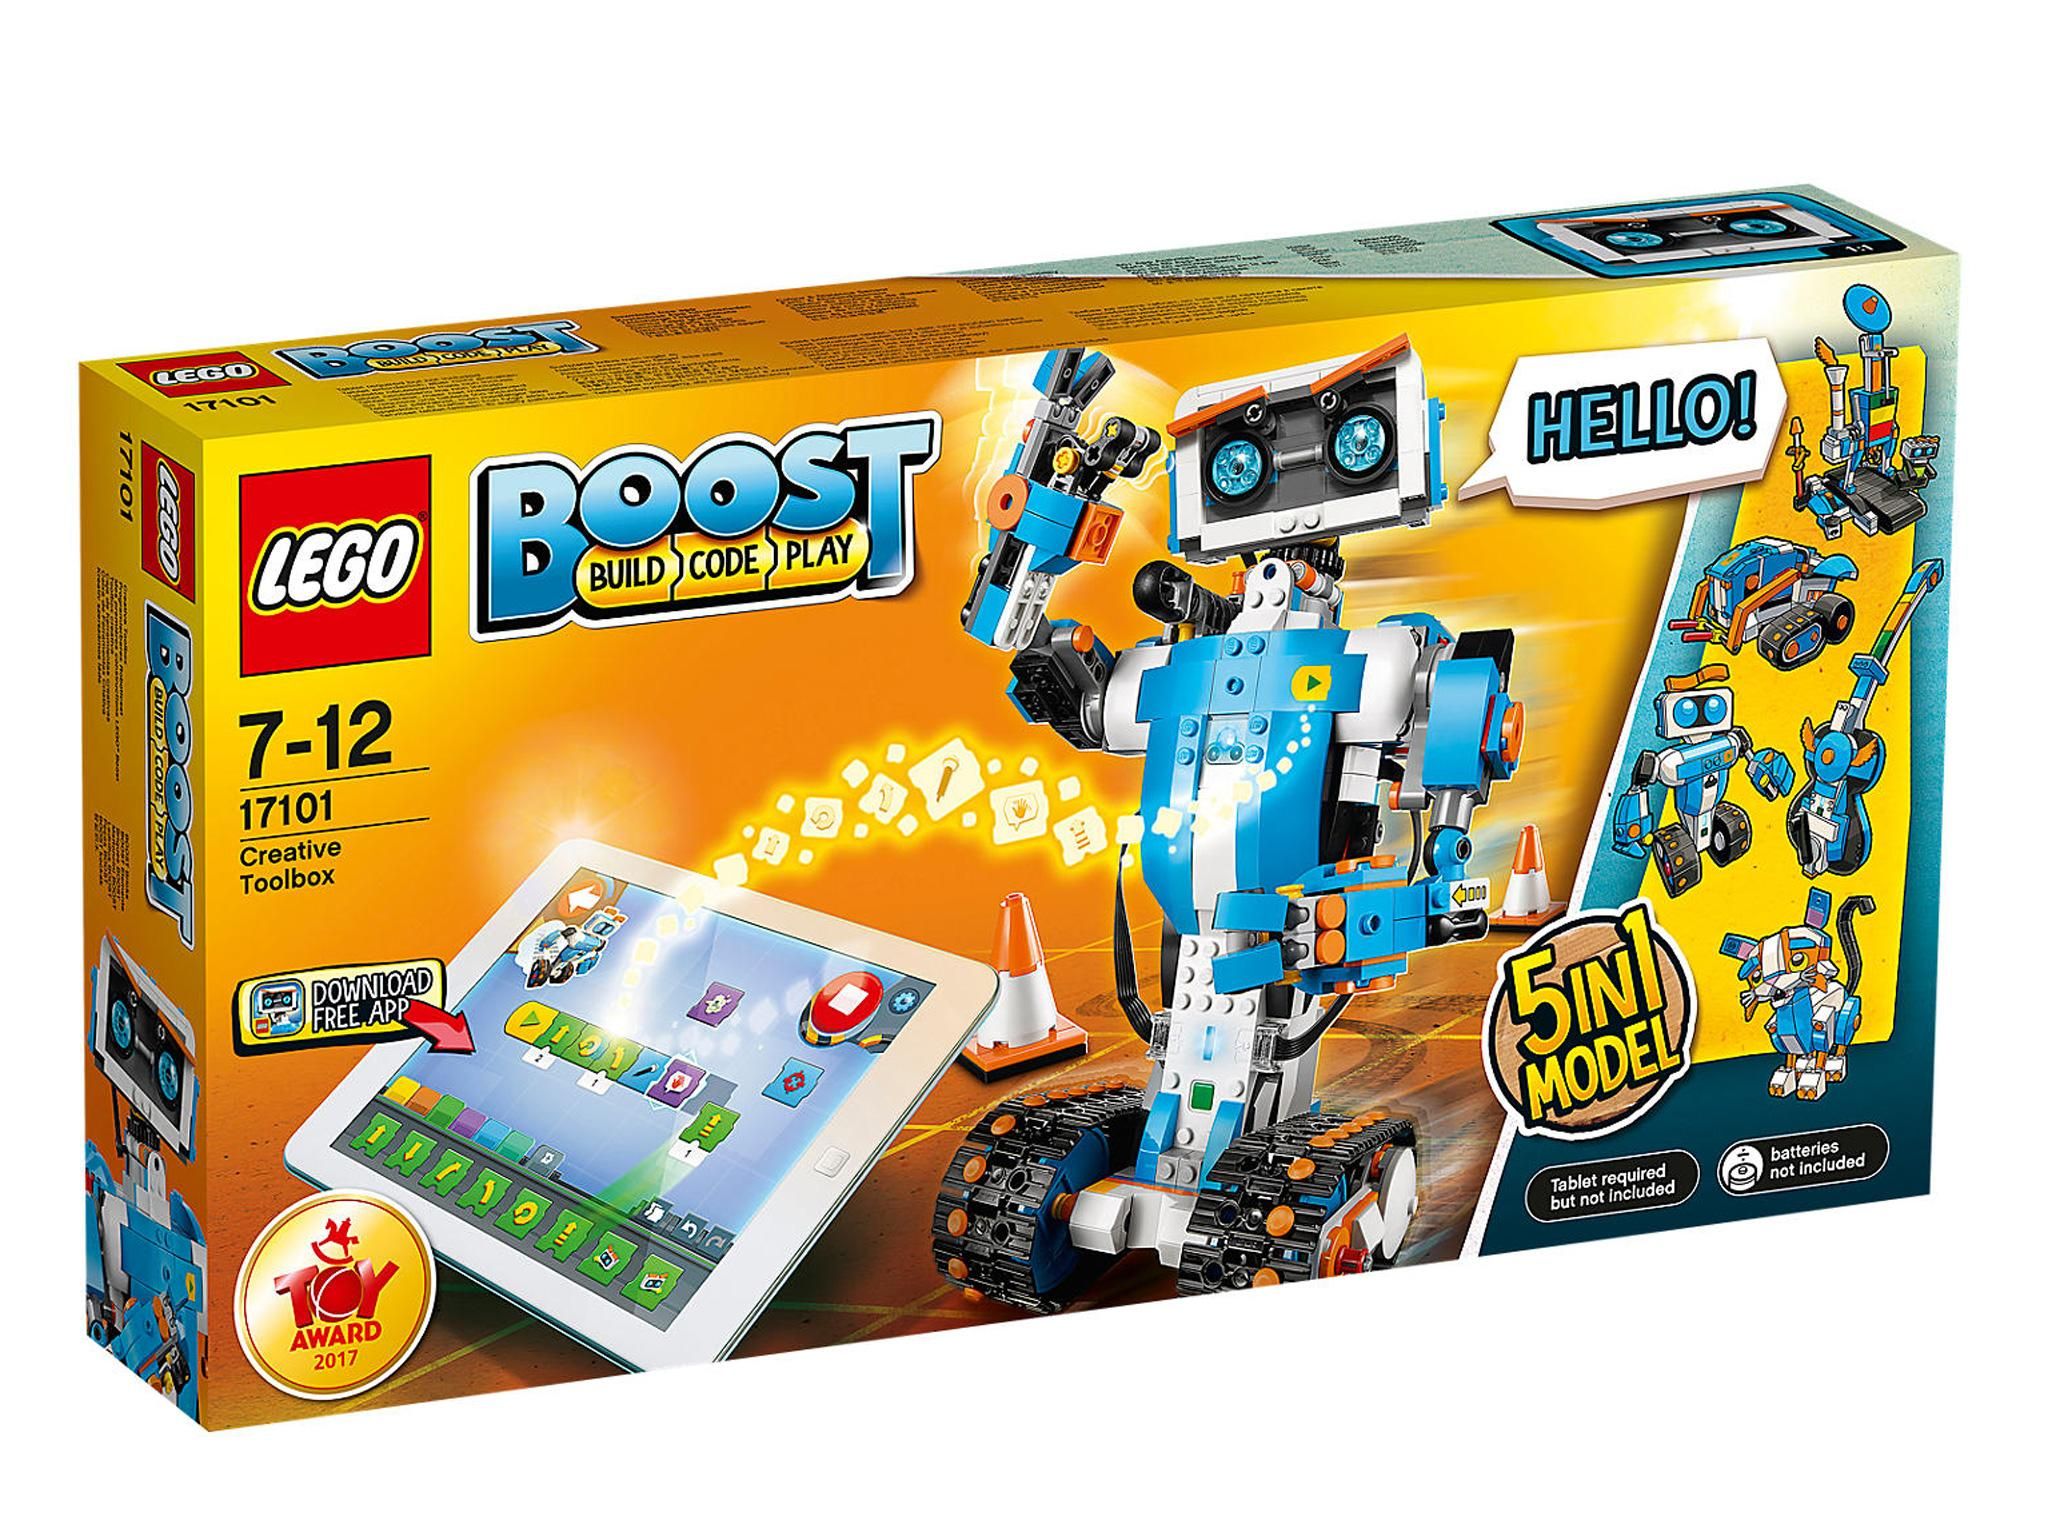 10 best coding toys | The Independent